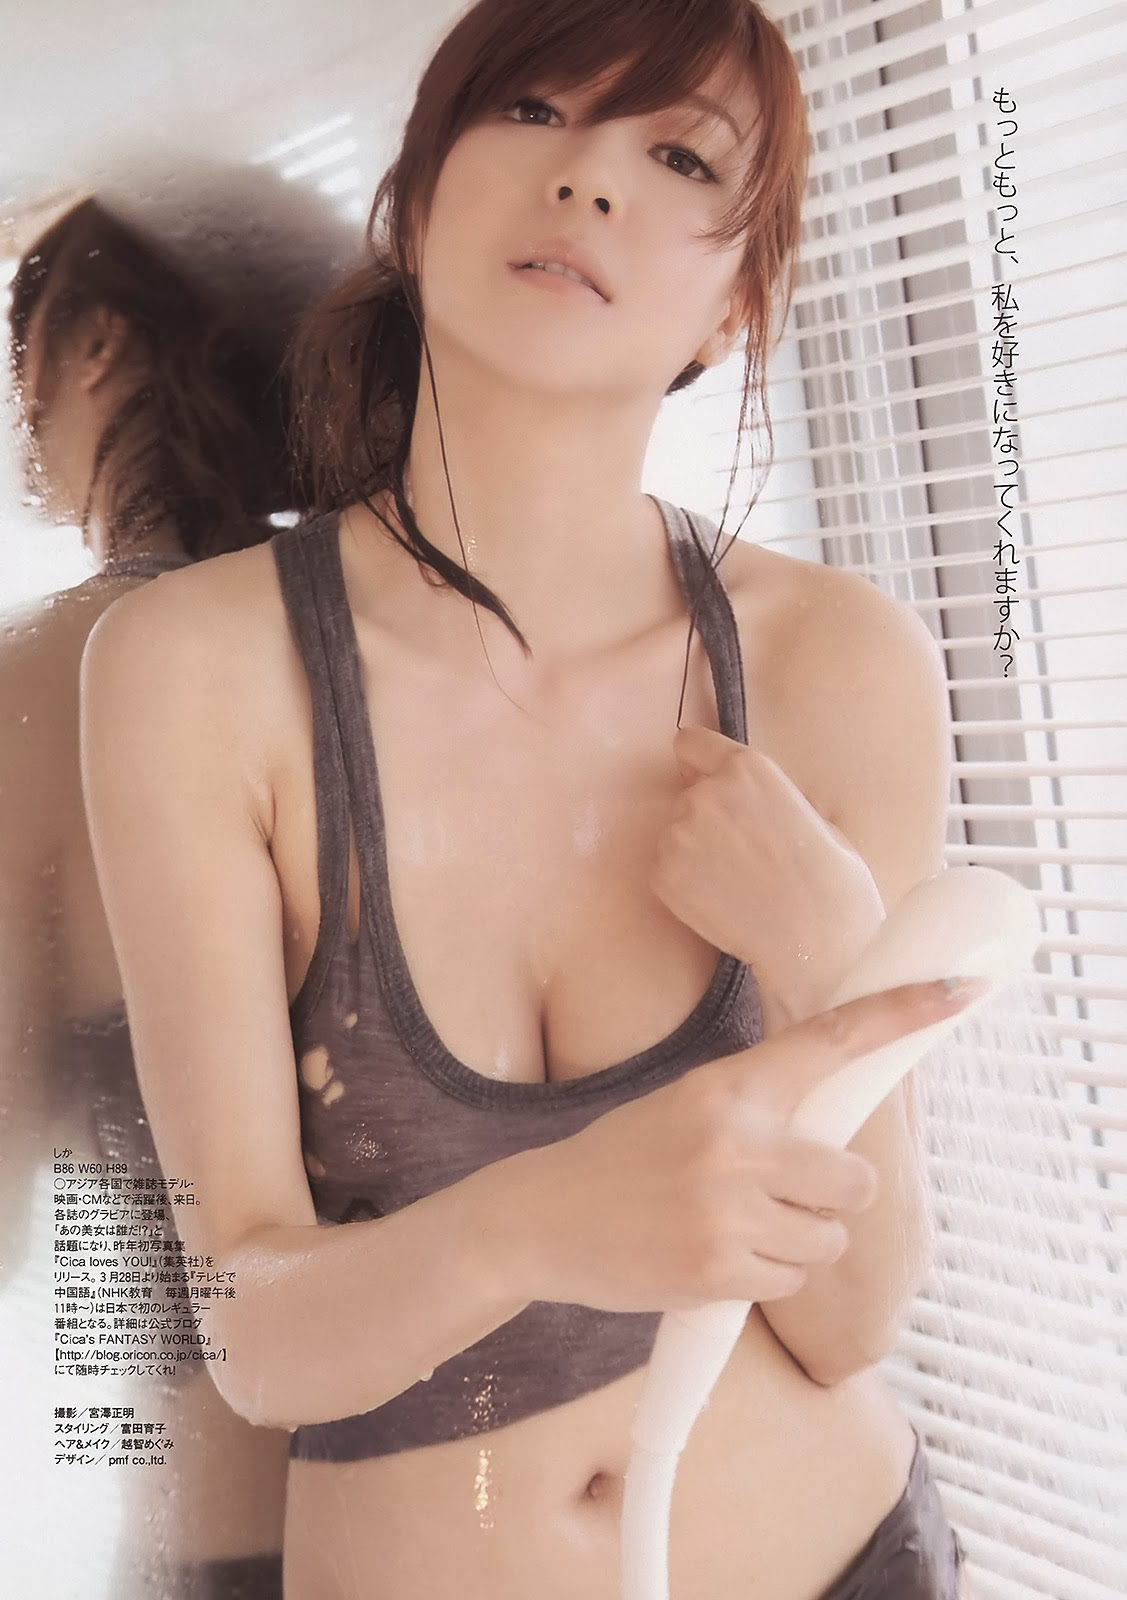 Cica Zhou Wei Tong 周伟童 – Complete Gallery of Pictures ...